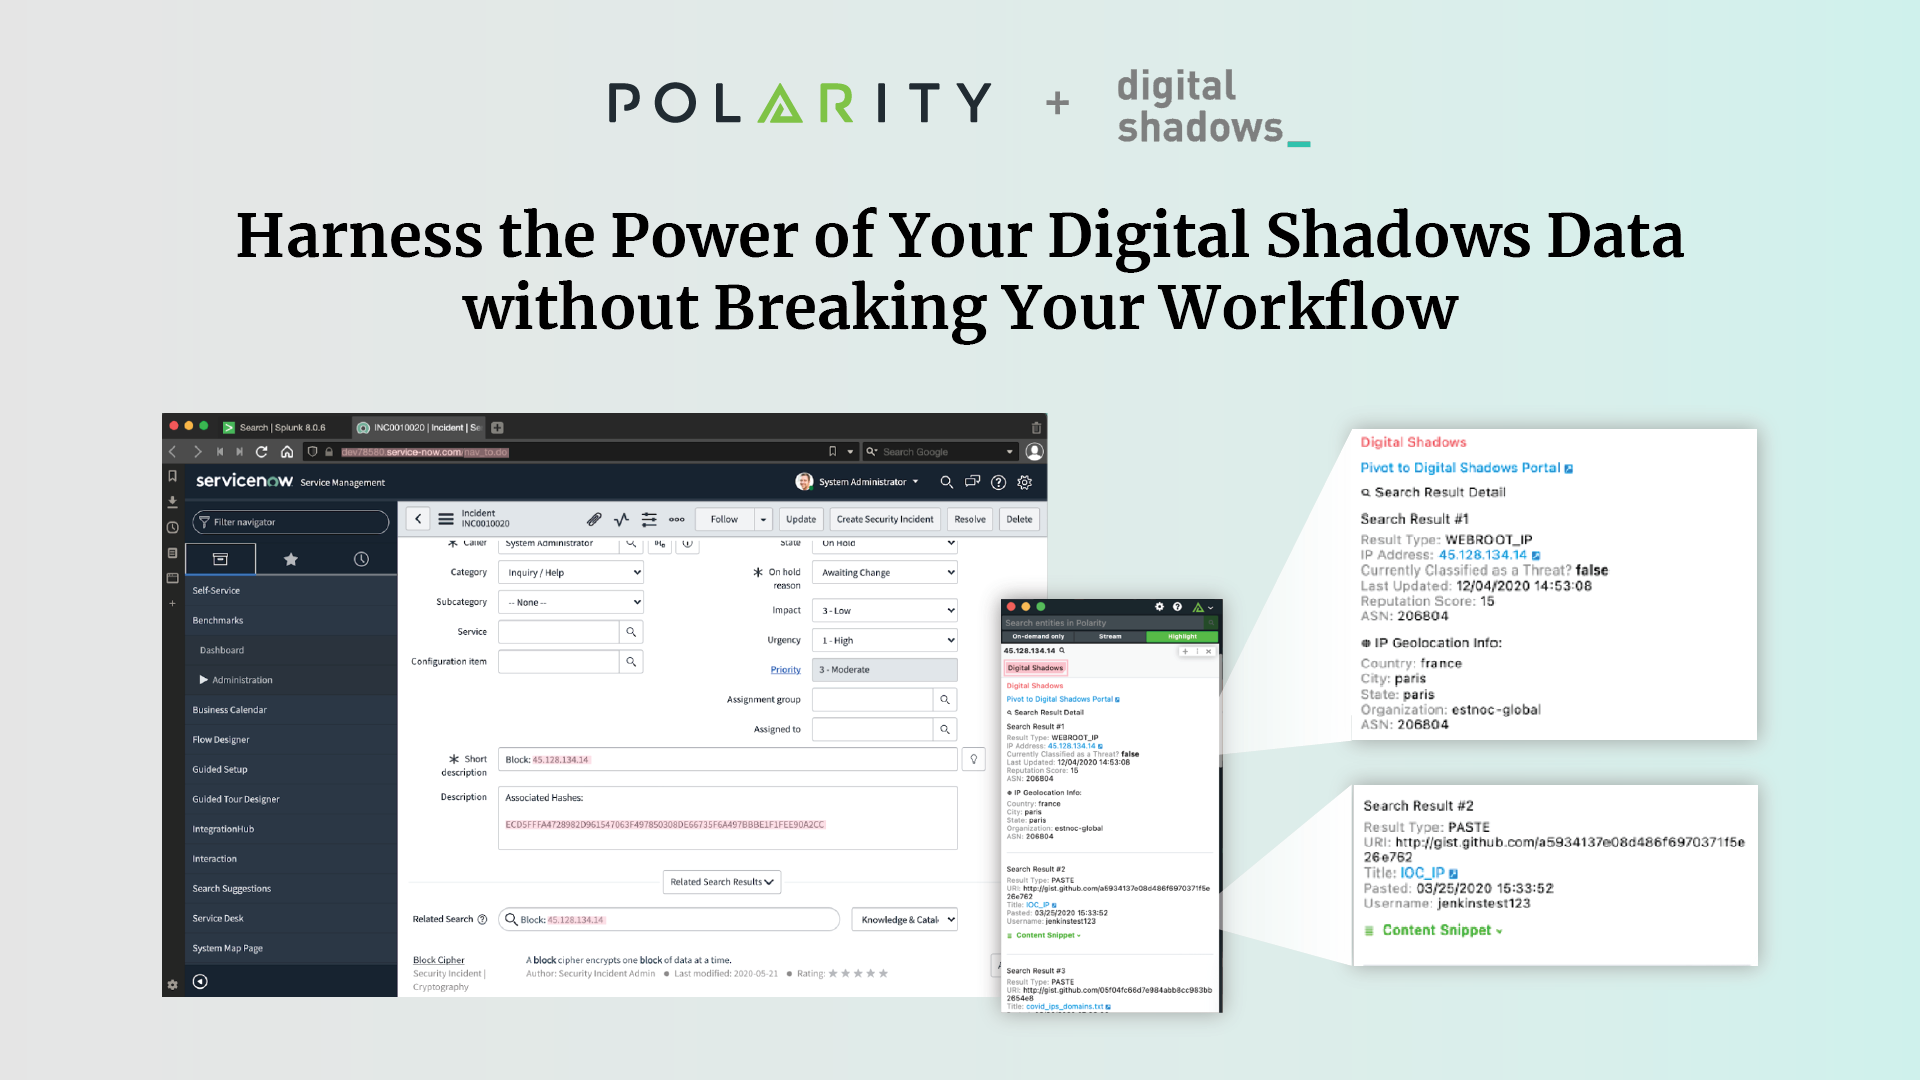 Harness the Power of Your Digital Shadows Data without Breaking Your Workflow  cover image